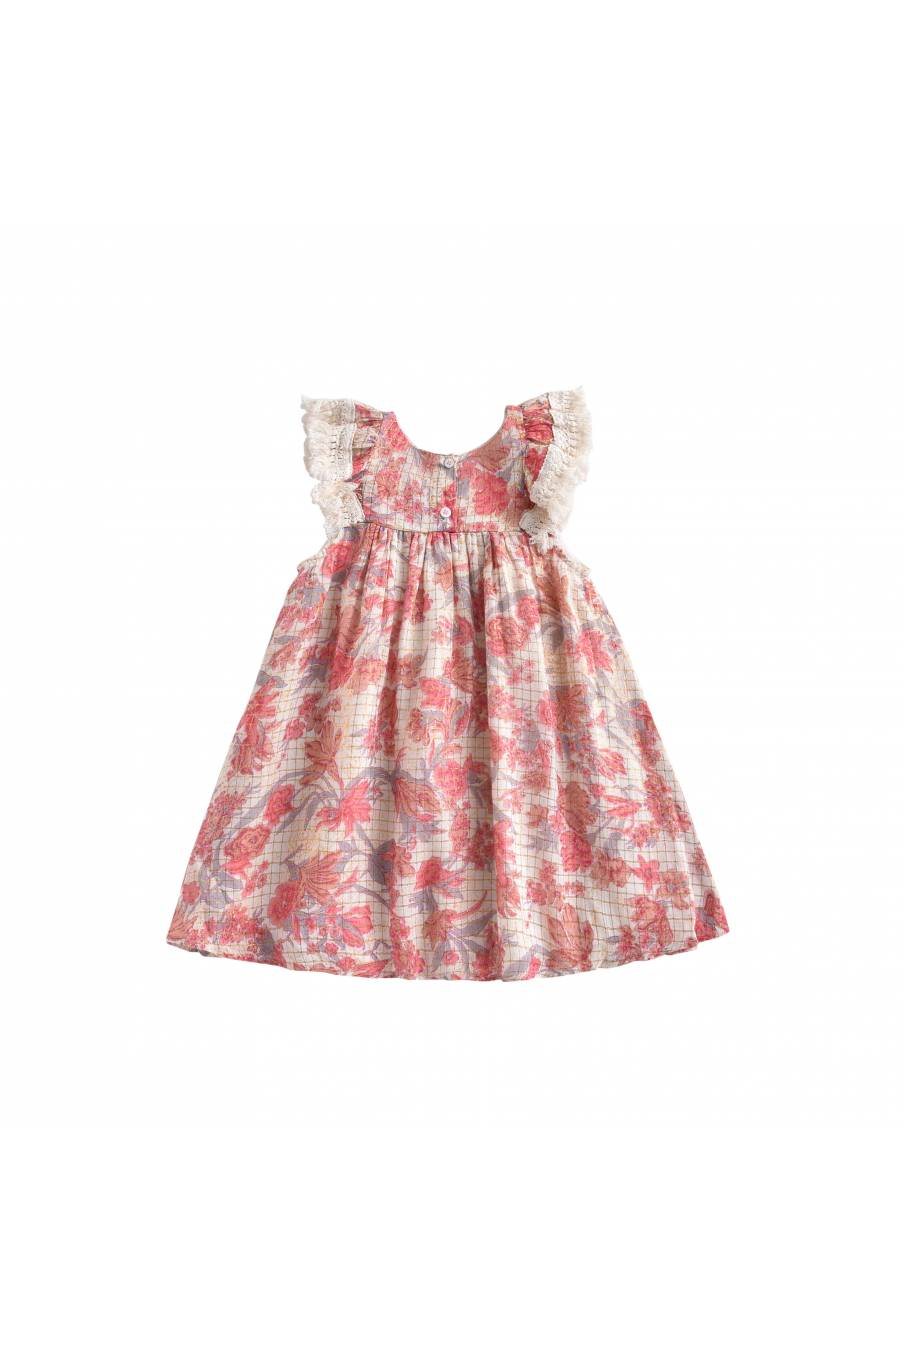 Dress Janice Pink Flowers